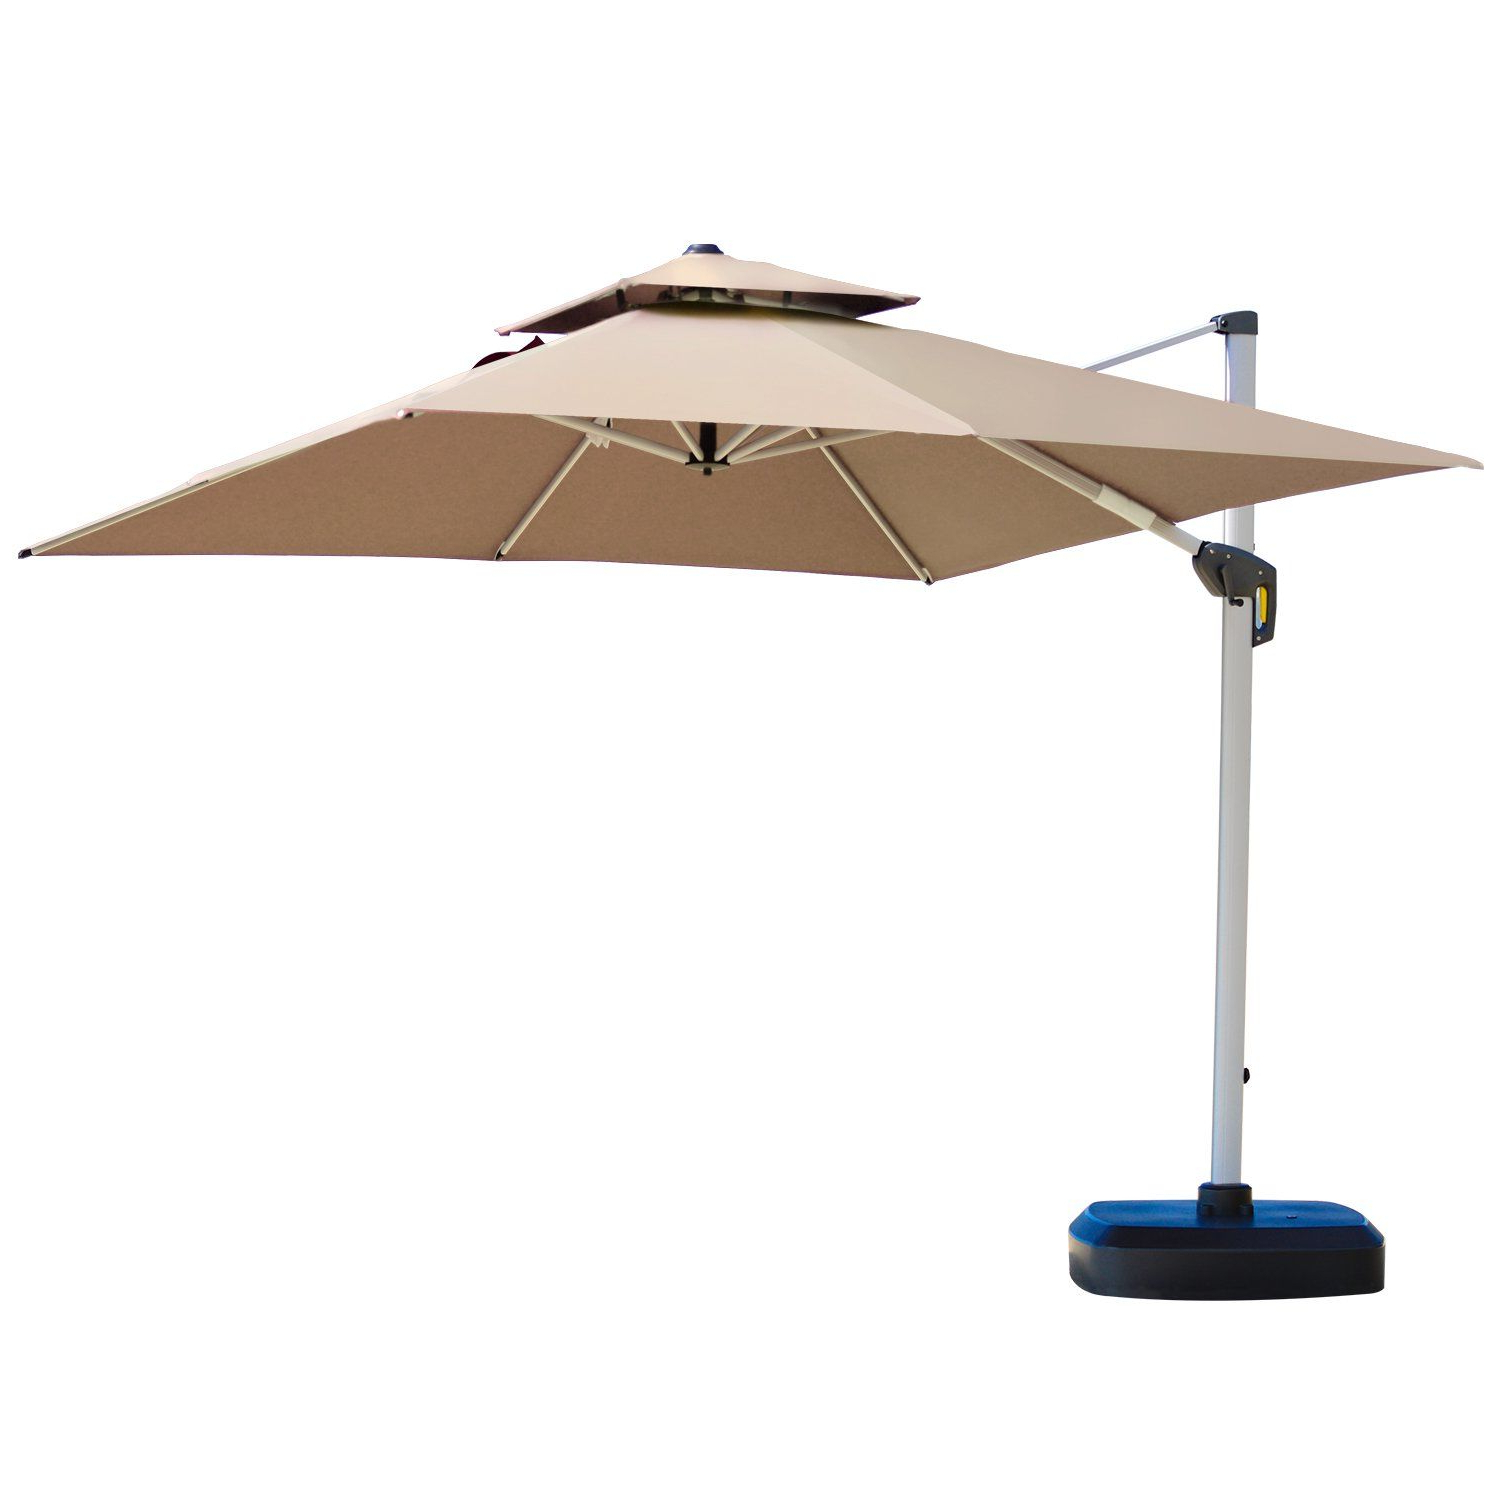 Most Recent Lytham Cantilever Umbrellas For Purple Leaf 10 Feet Double Top Deluxe Square Patio Umbrella Offset (View 5 of 20)